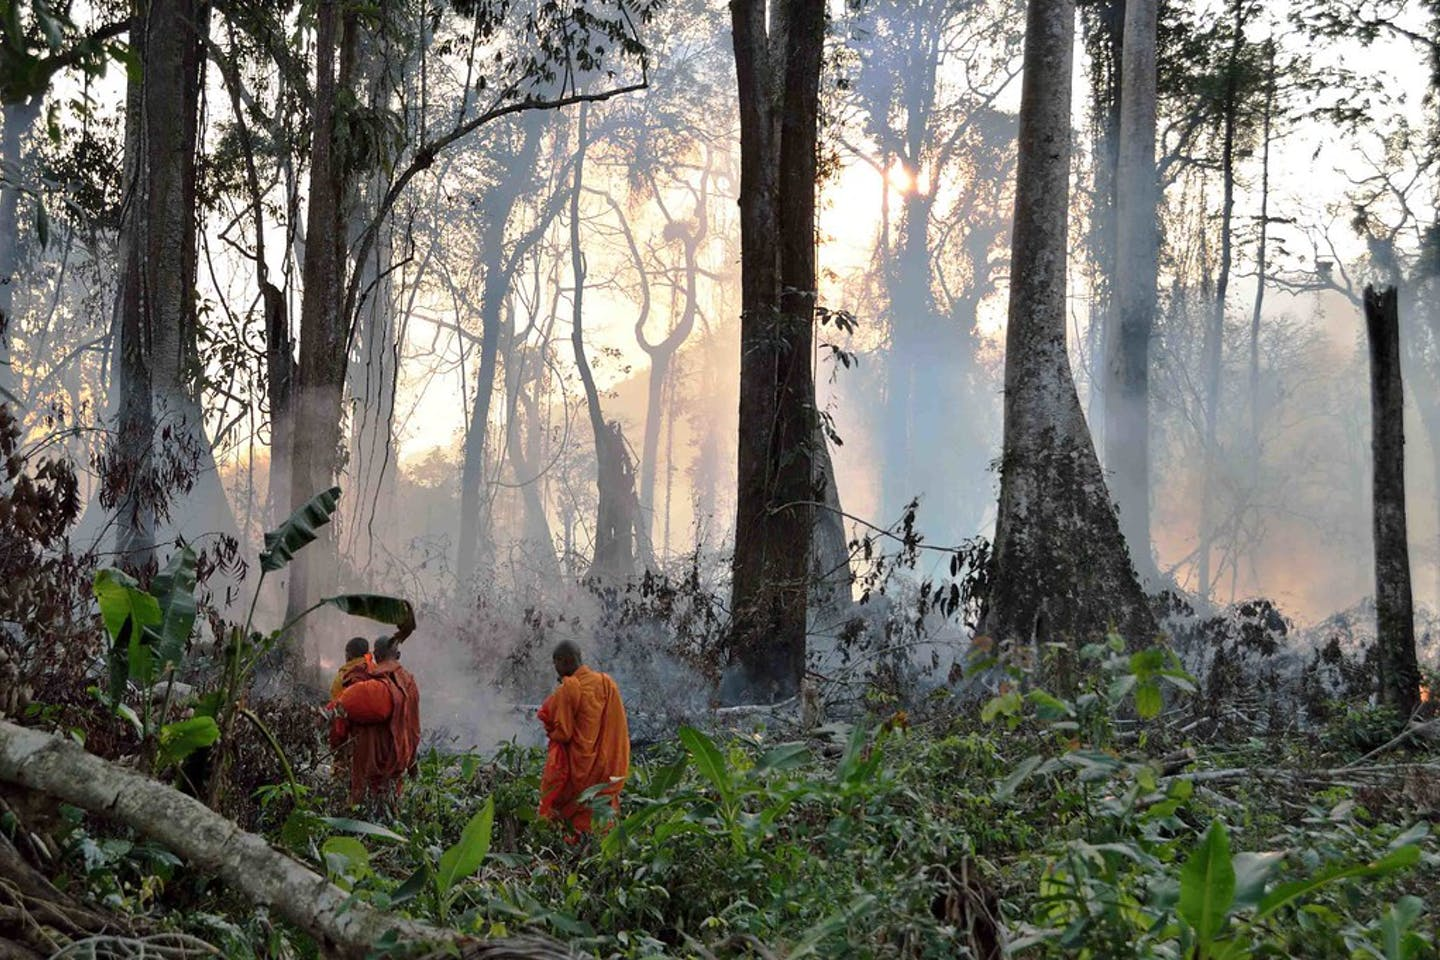 Buddhist monks in Angkor Wat Cambodia forest